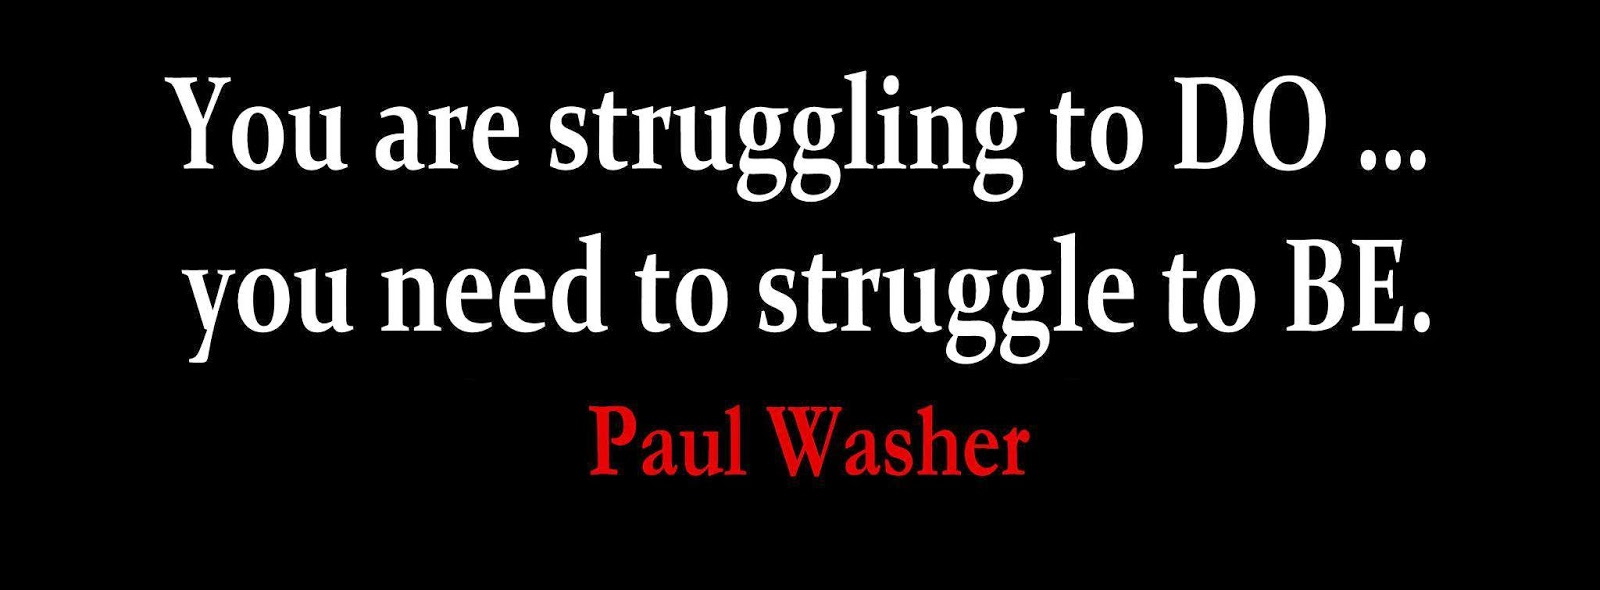 You are struggling to DO... you need to struggle to BE Paul Washer